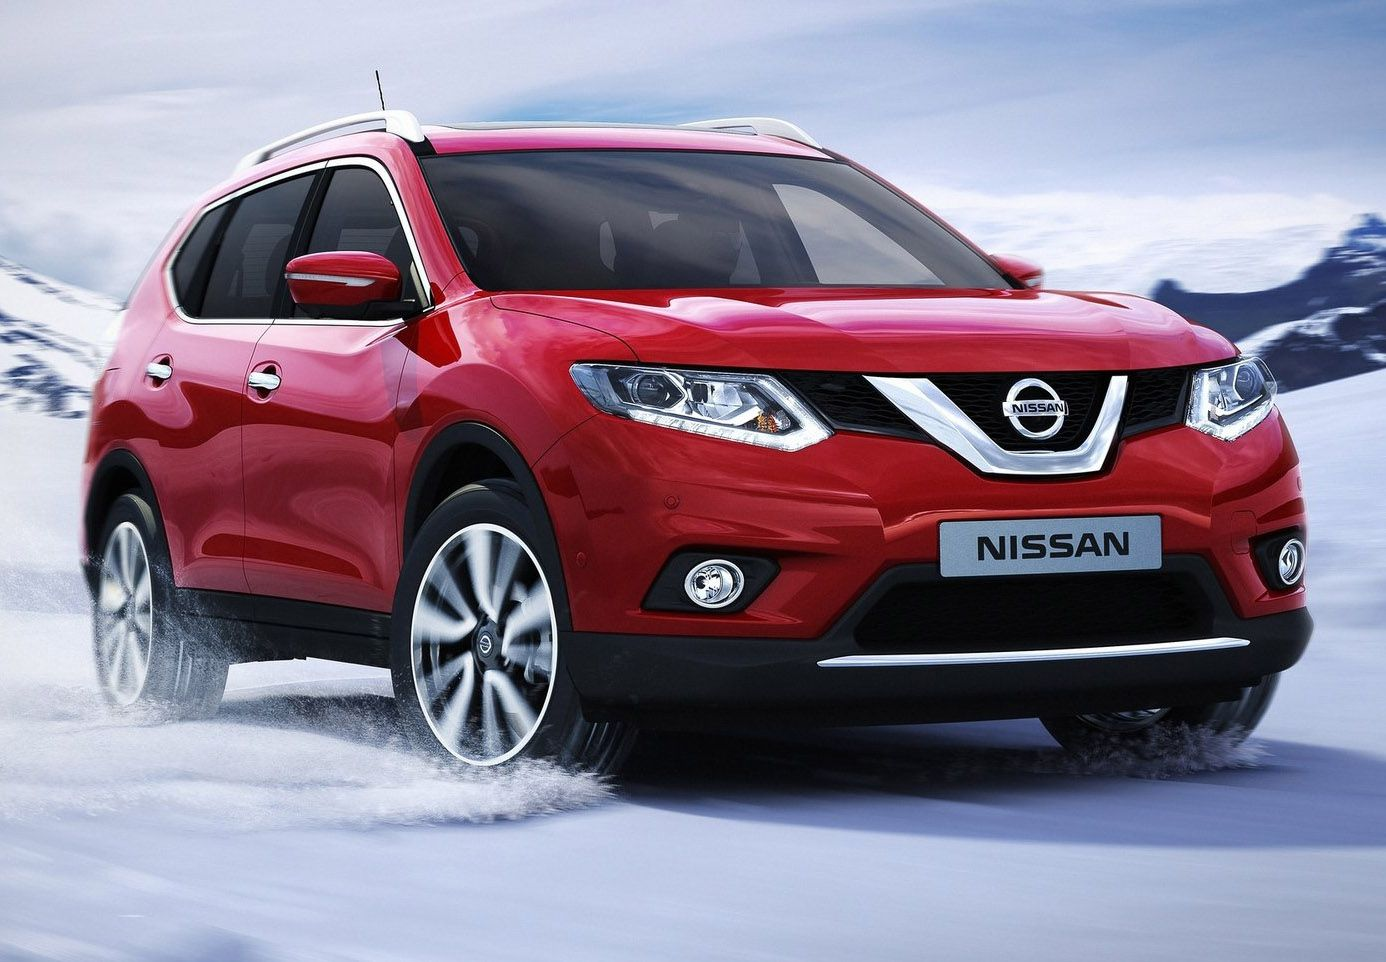 2015 nissan rogue release date autocarsblitz com the upcoming 2015 nissan rogue is actually the partial redesign from the previous model